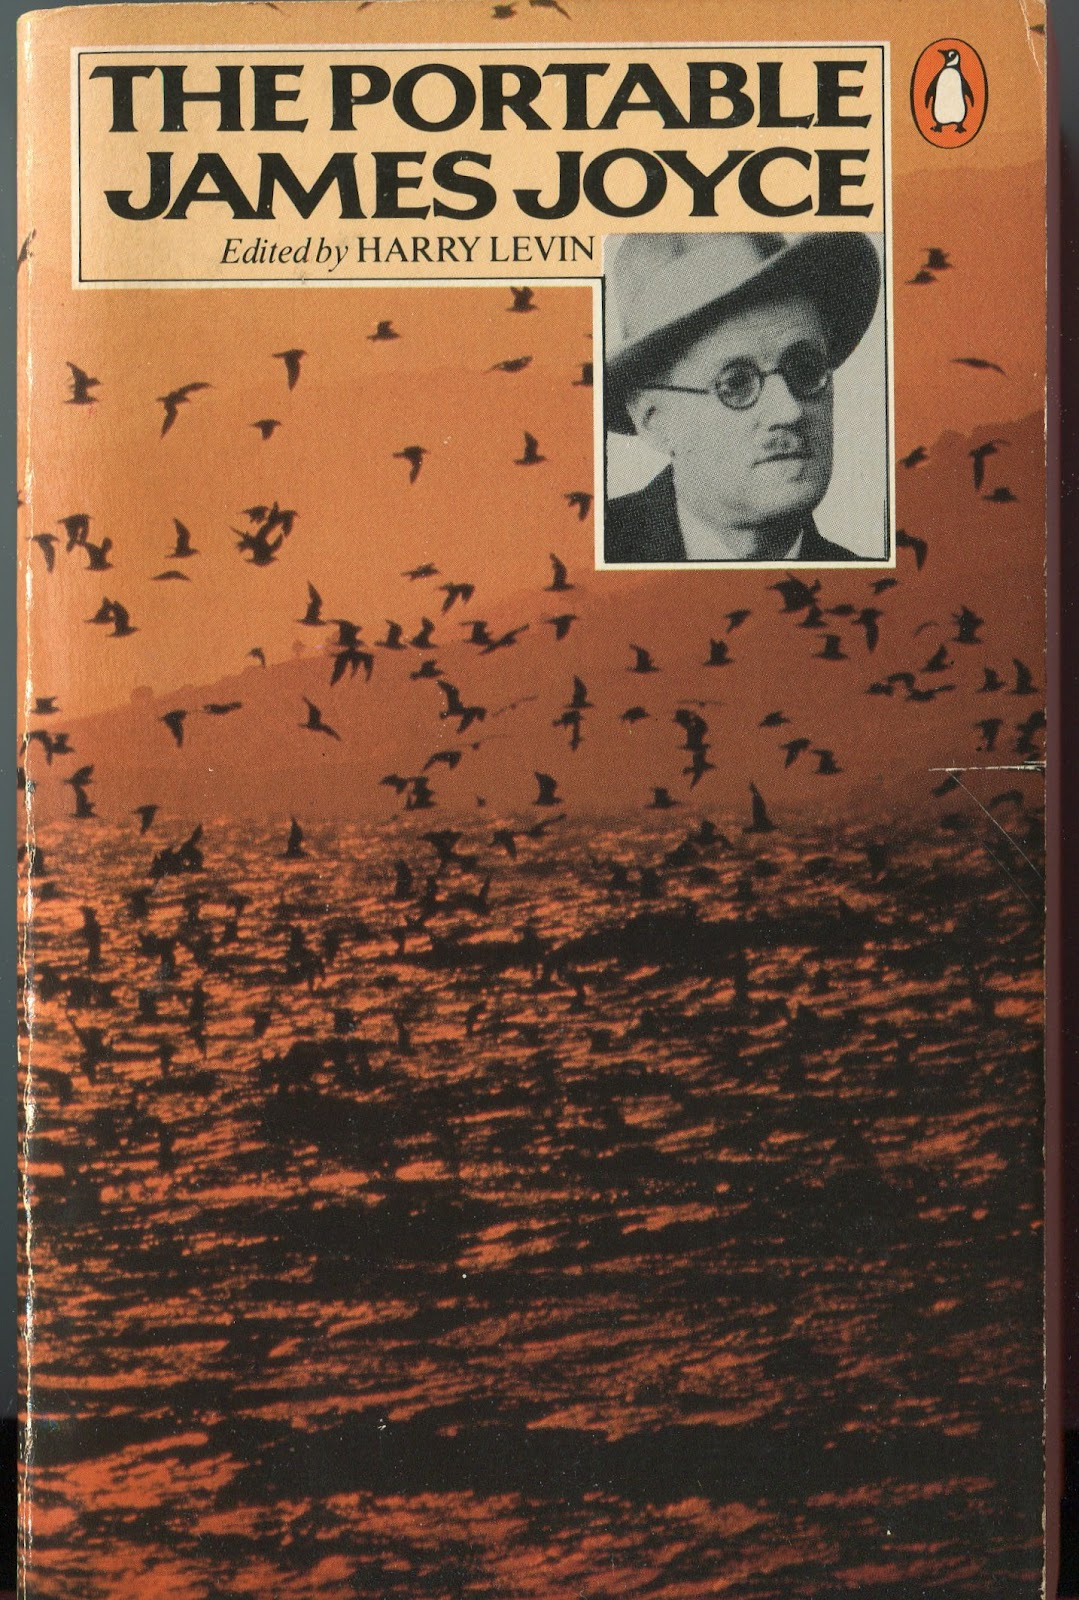 james joyce his life and work essay